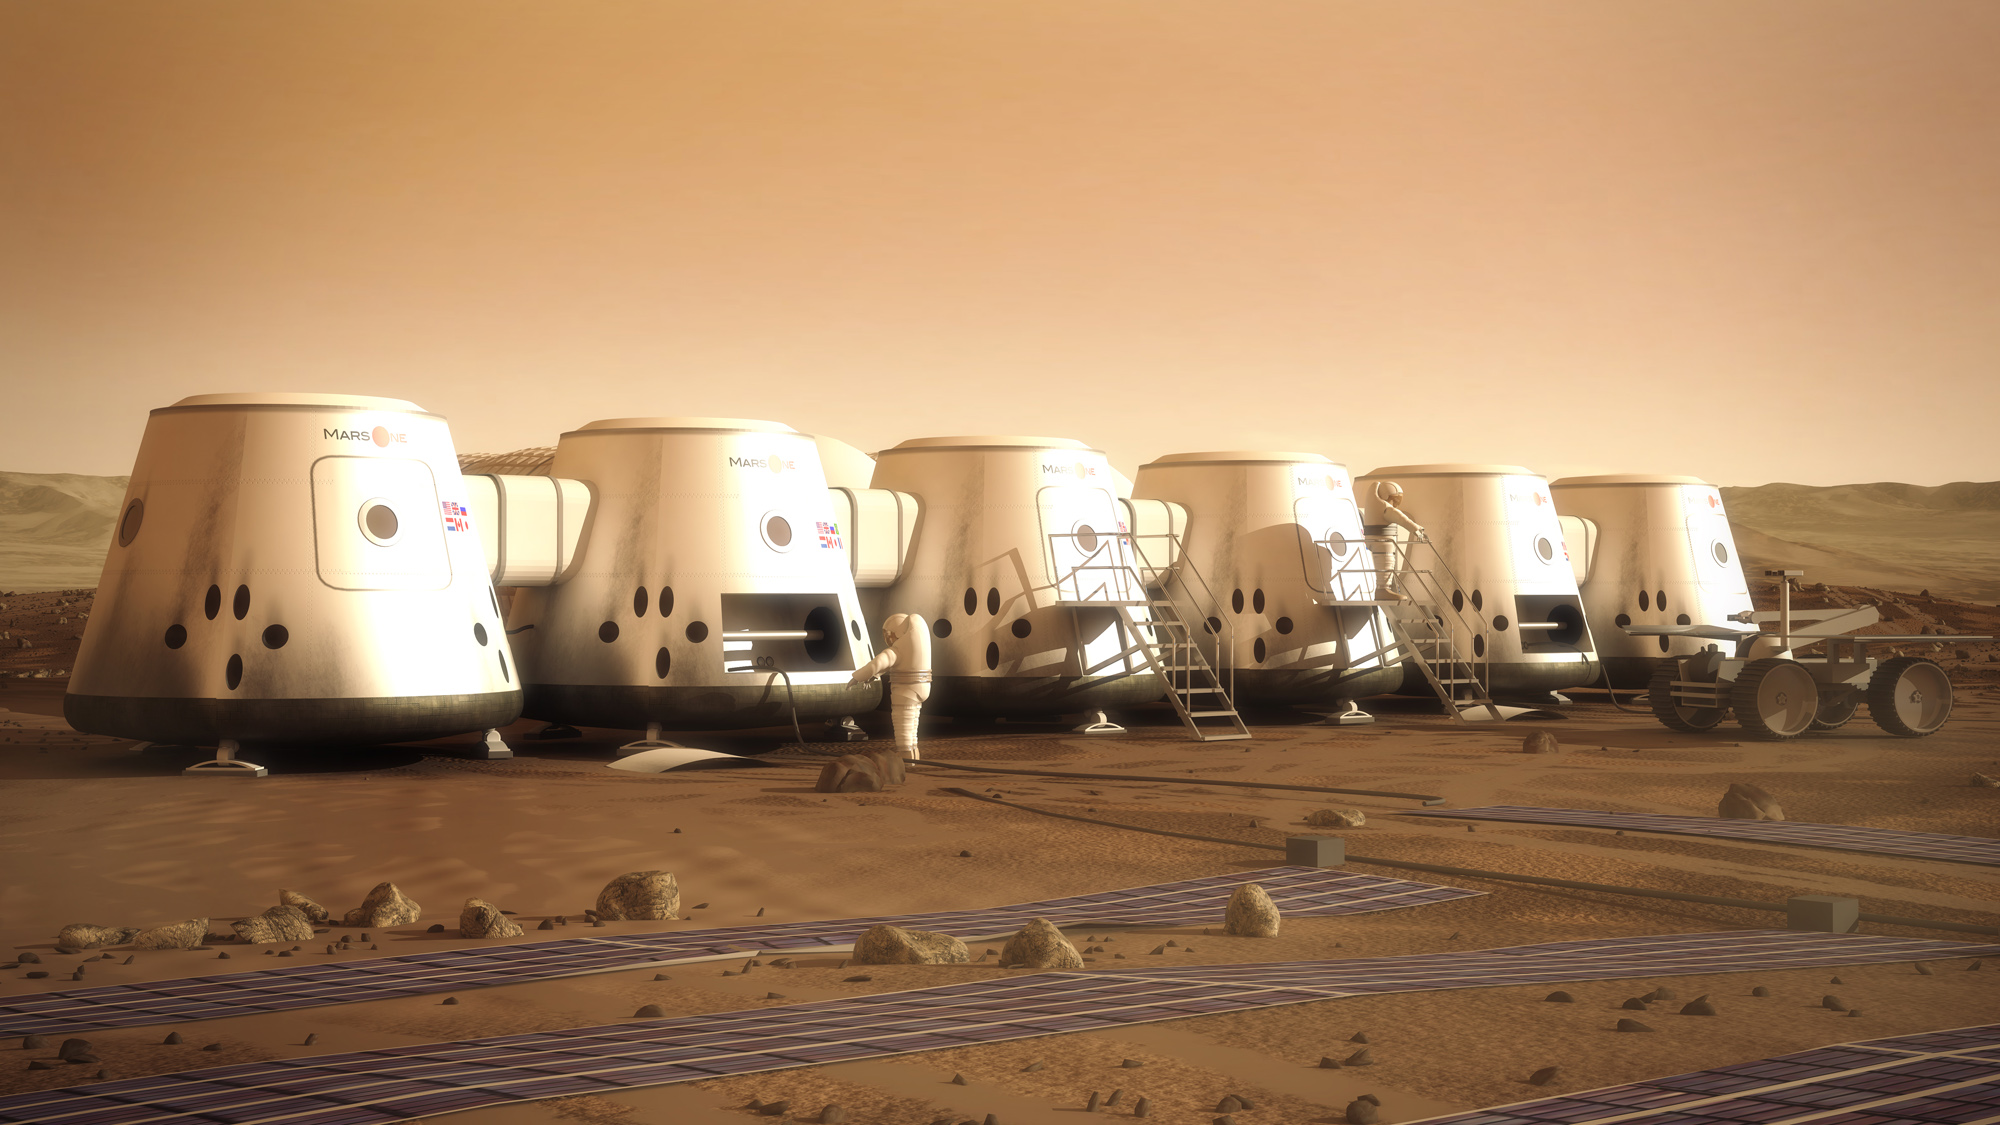 Colonizing Mars: Q&A with Mars One Chief Bas Lansdorp